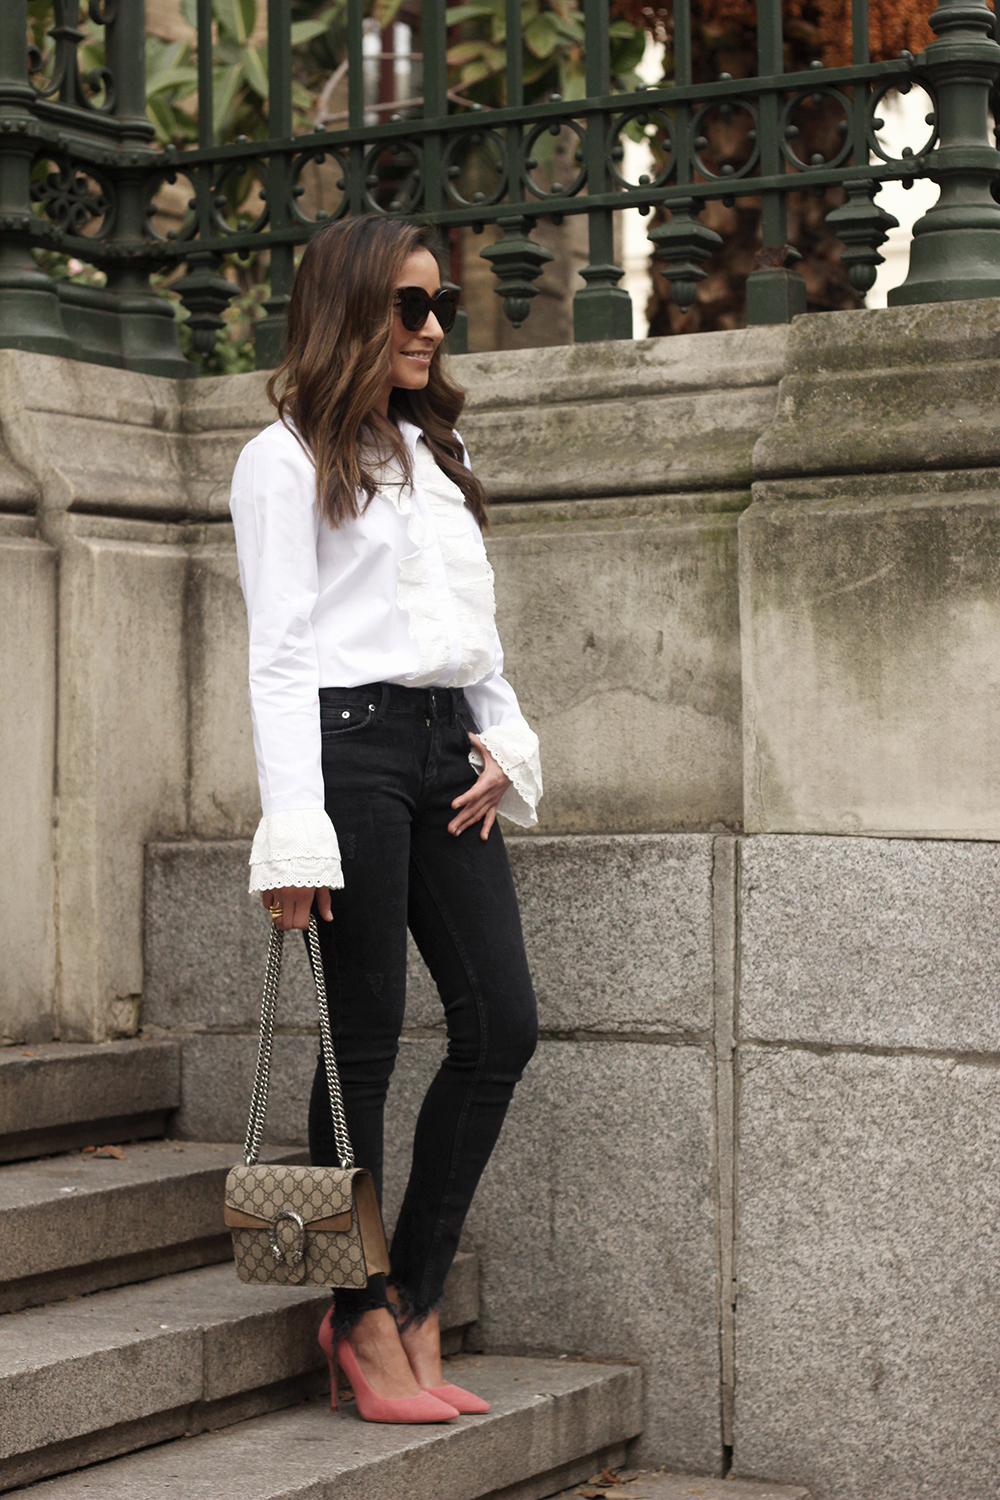 White ruffled shirt pink heels black jeans uterqüe gucci bag céline outfit style01